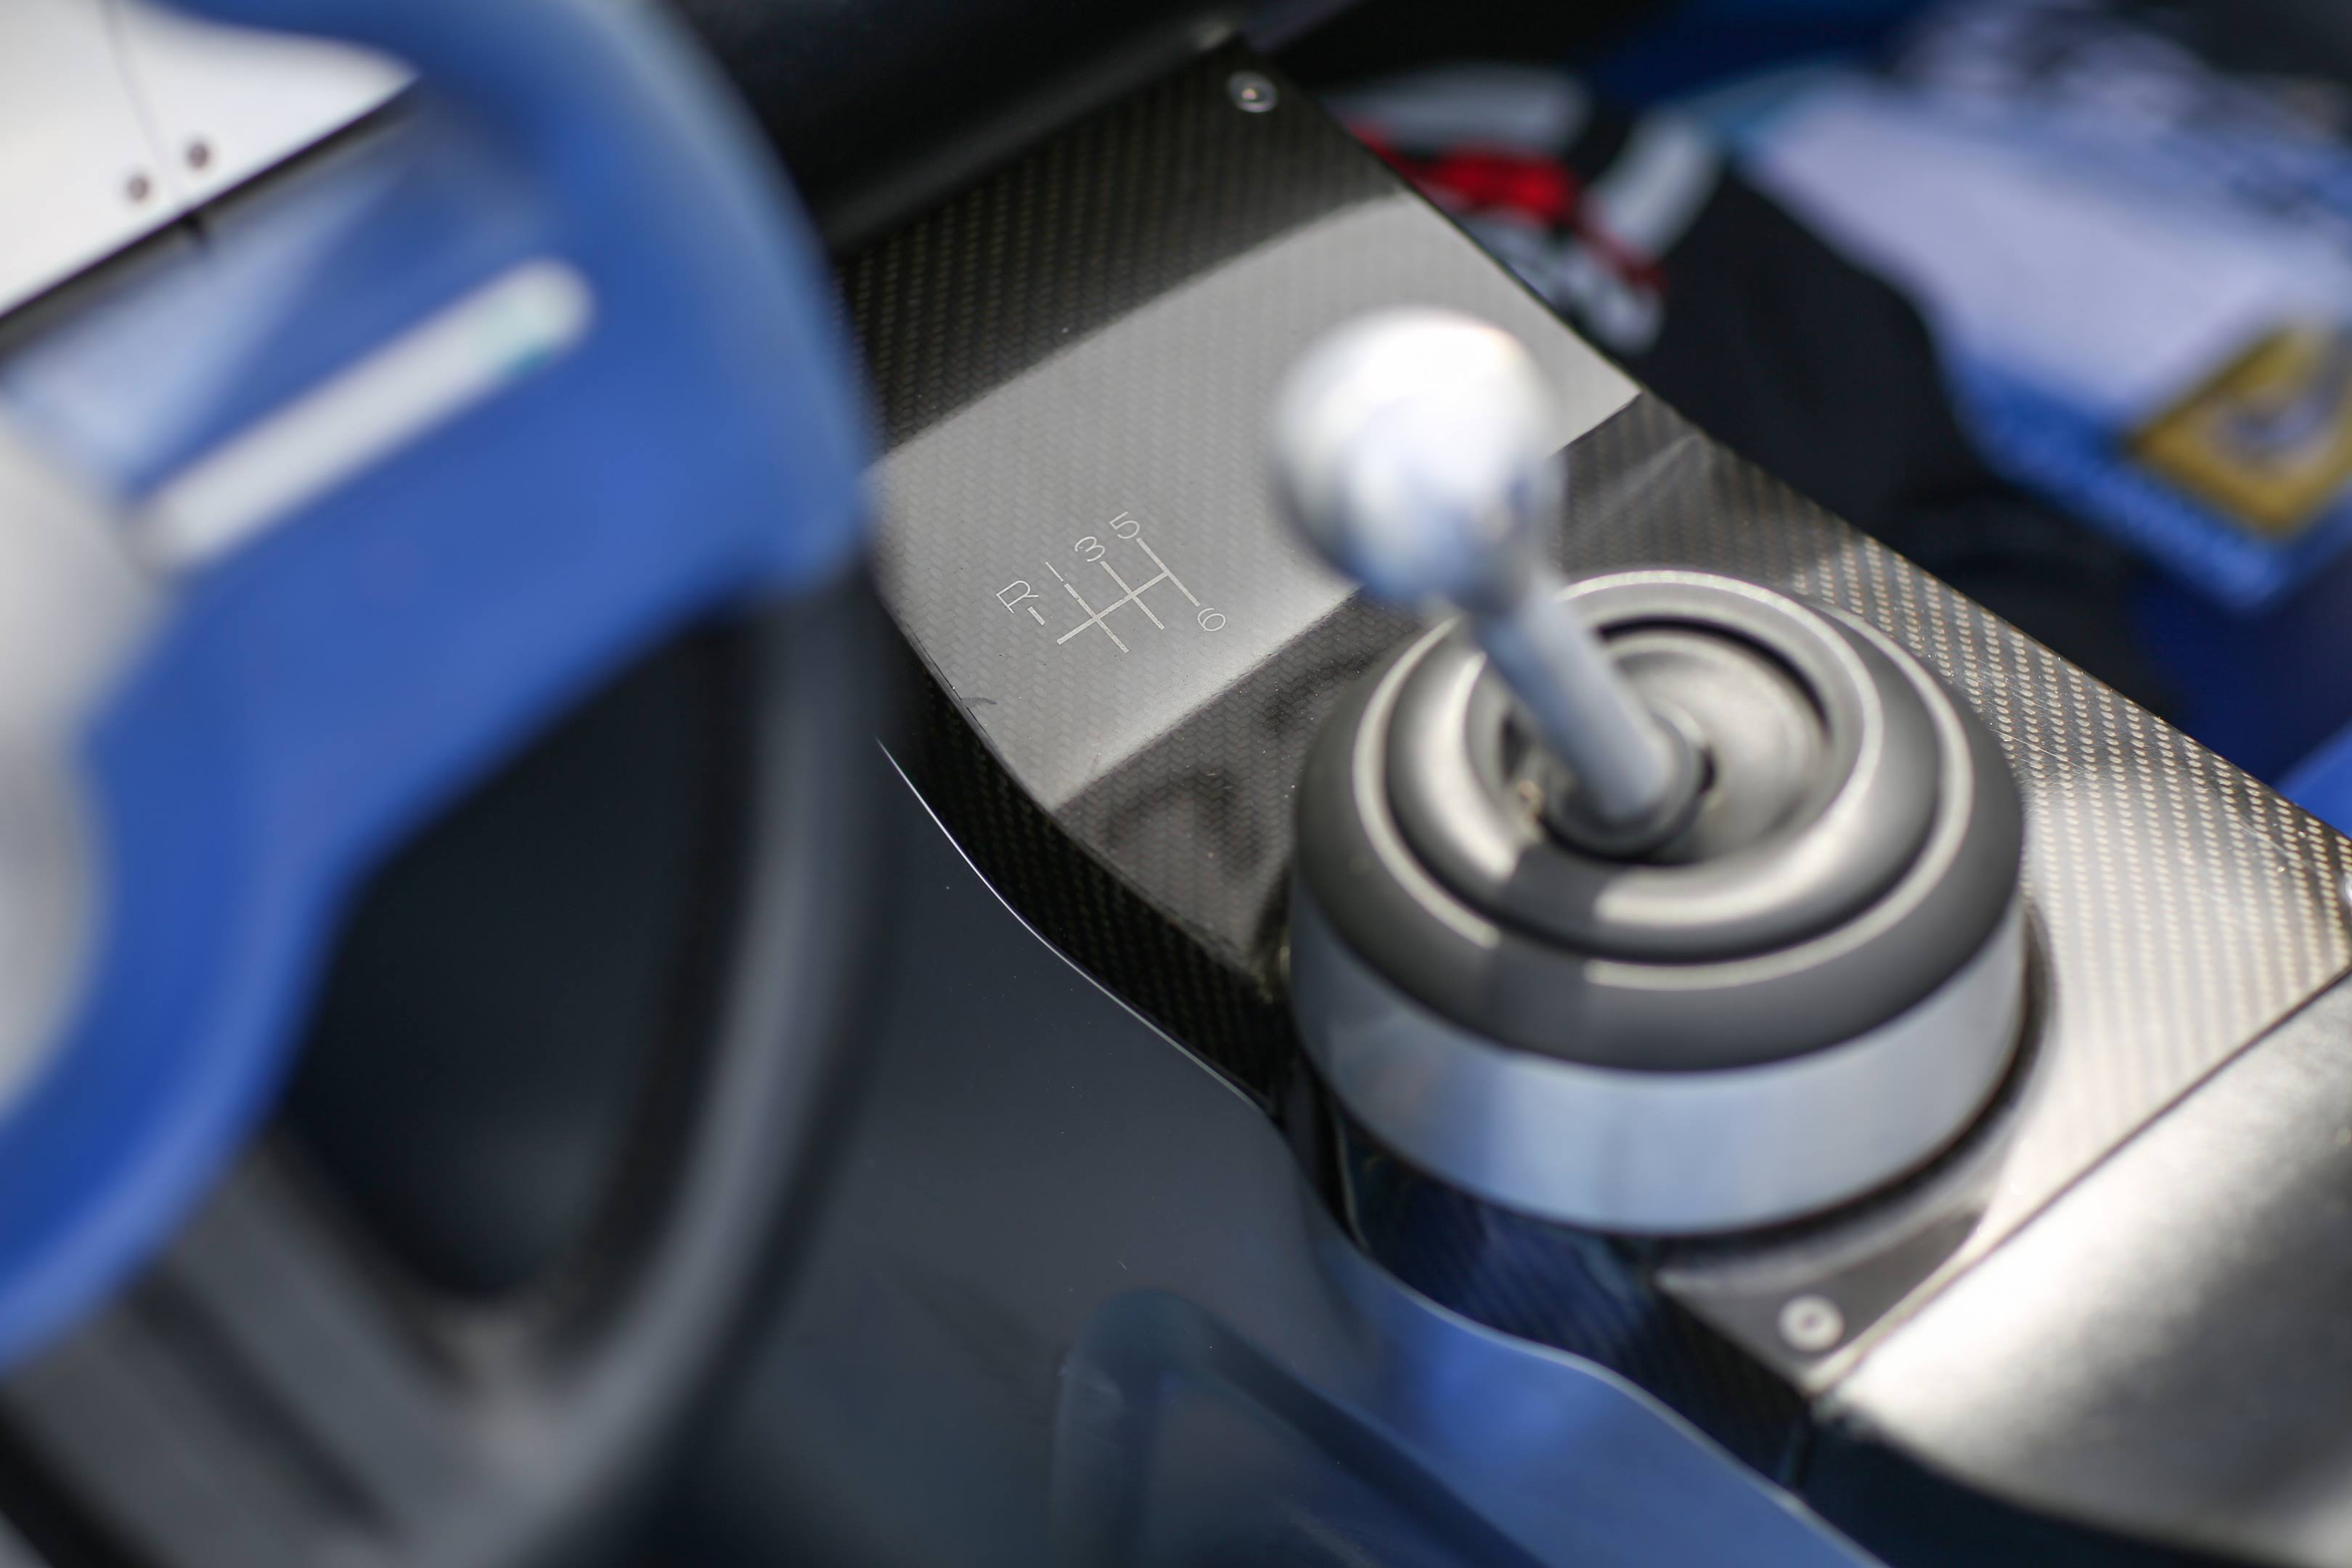 Shelby concept shifter knob